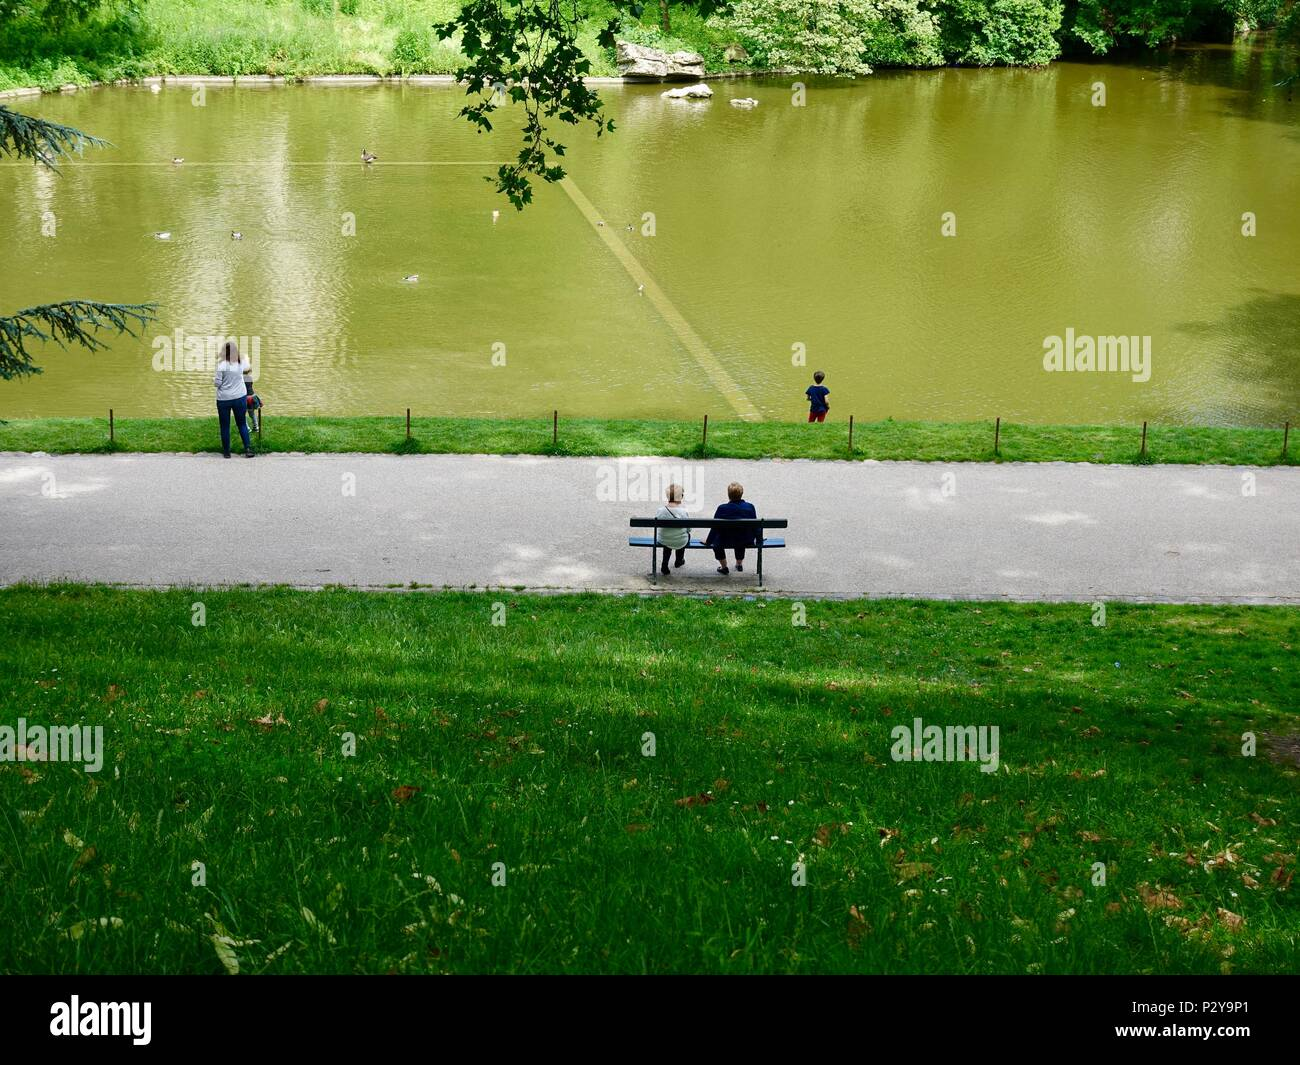 Two women sit on a bench overlooking the lake at Parc Buttes Chaumont, Paris, France - Stock Image